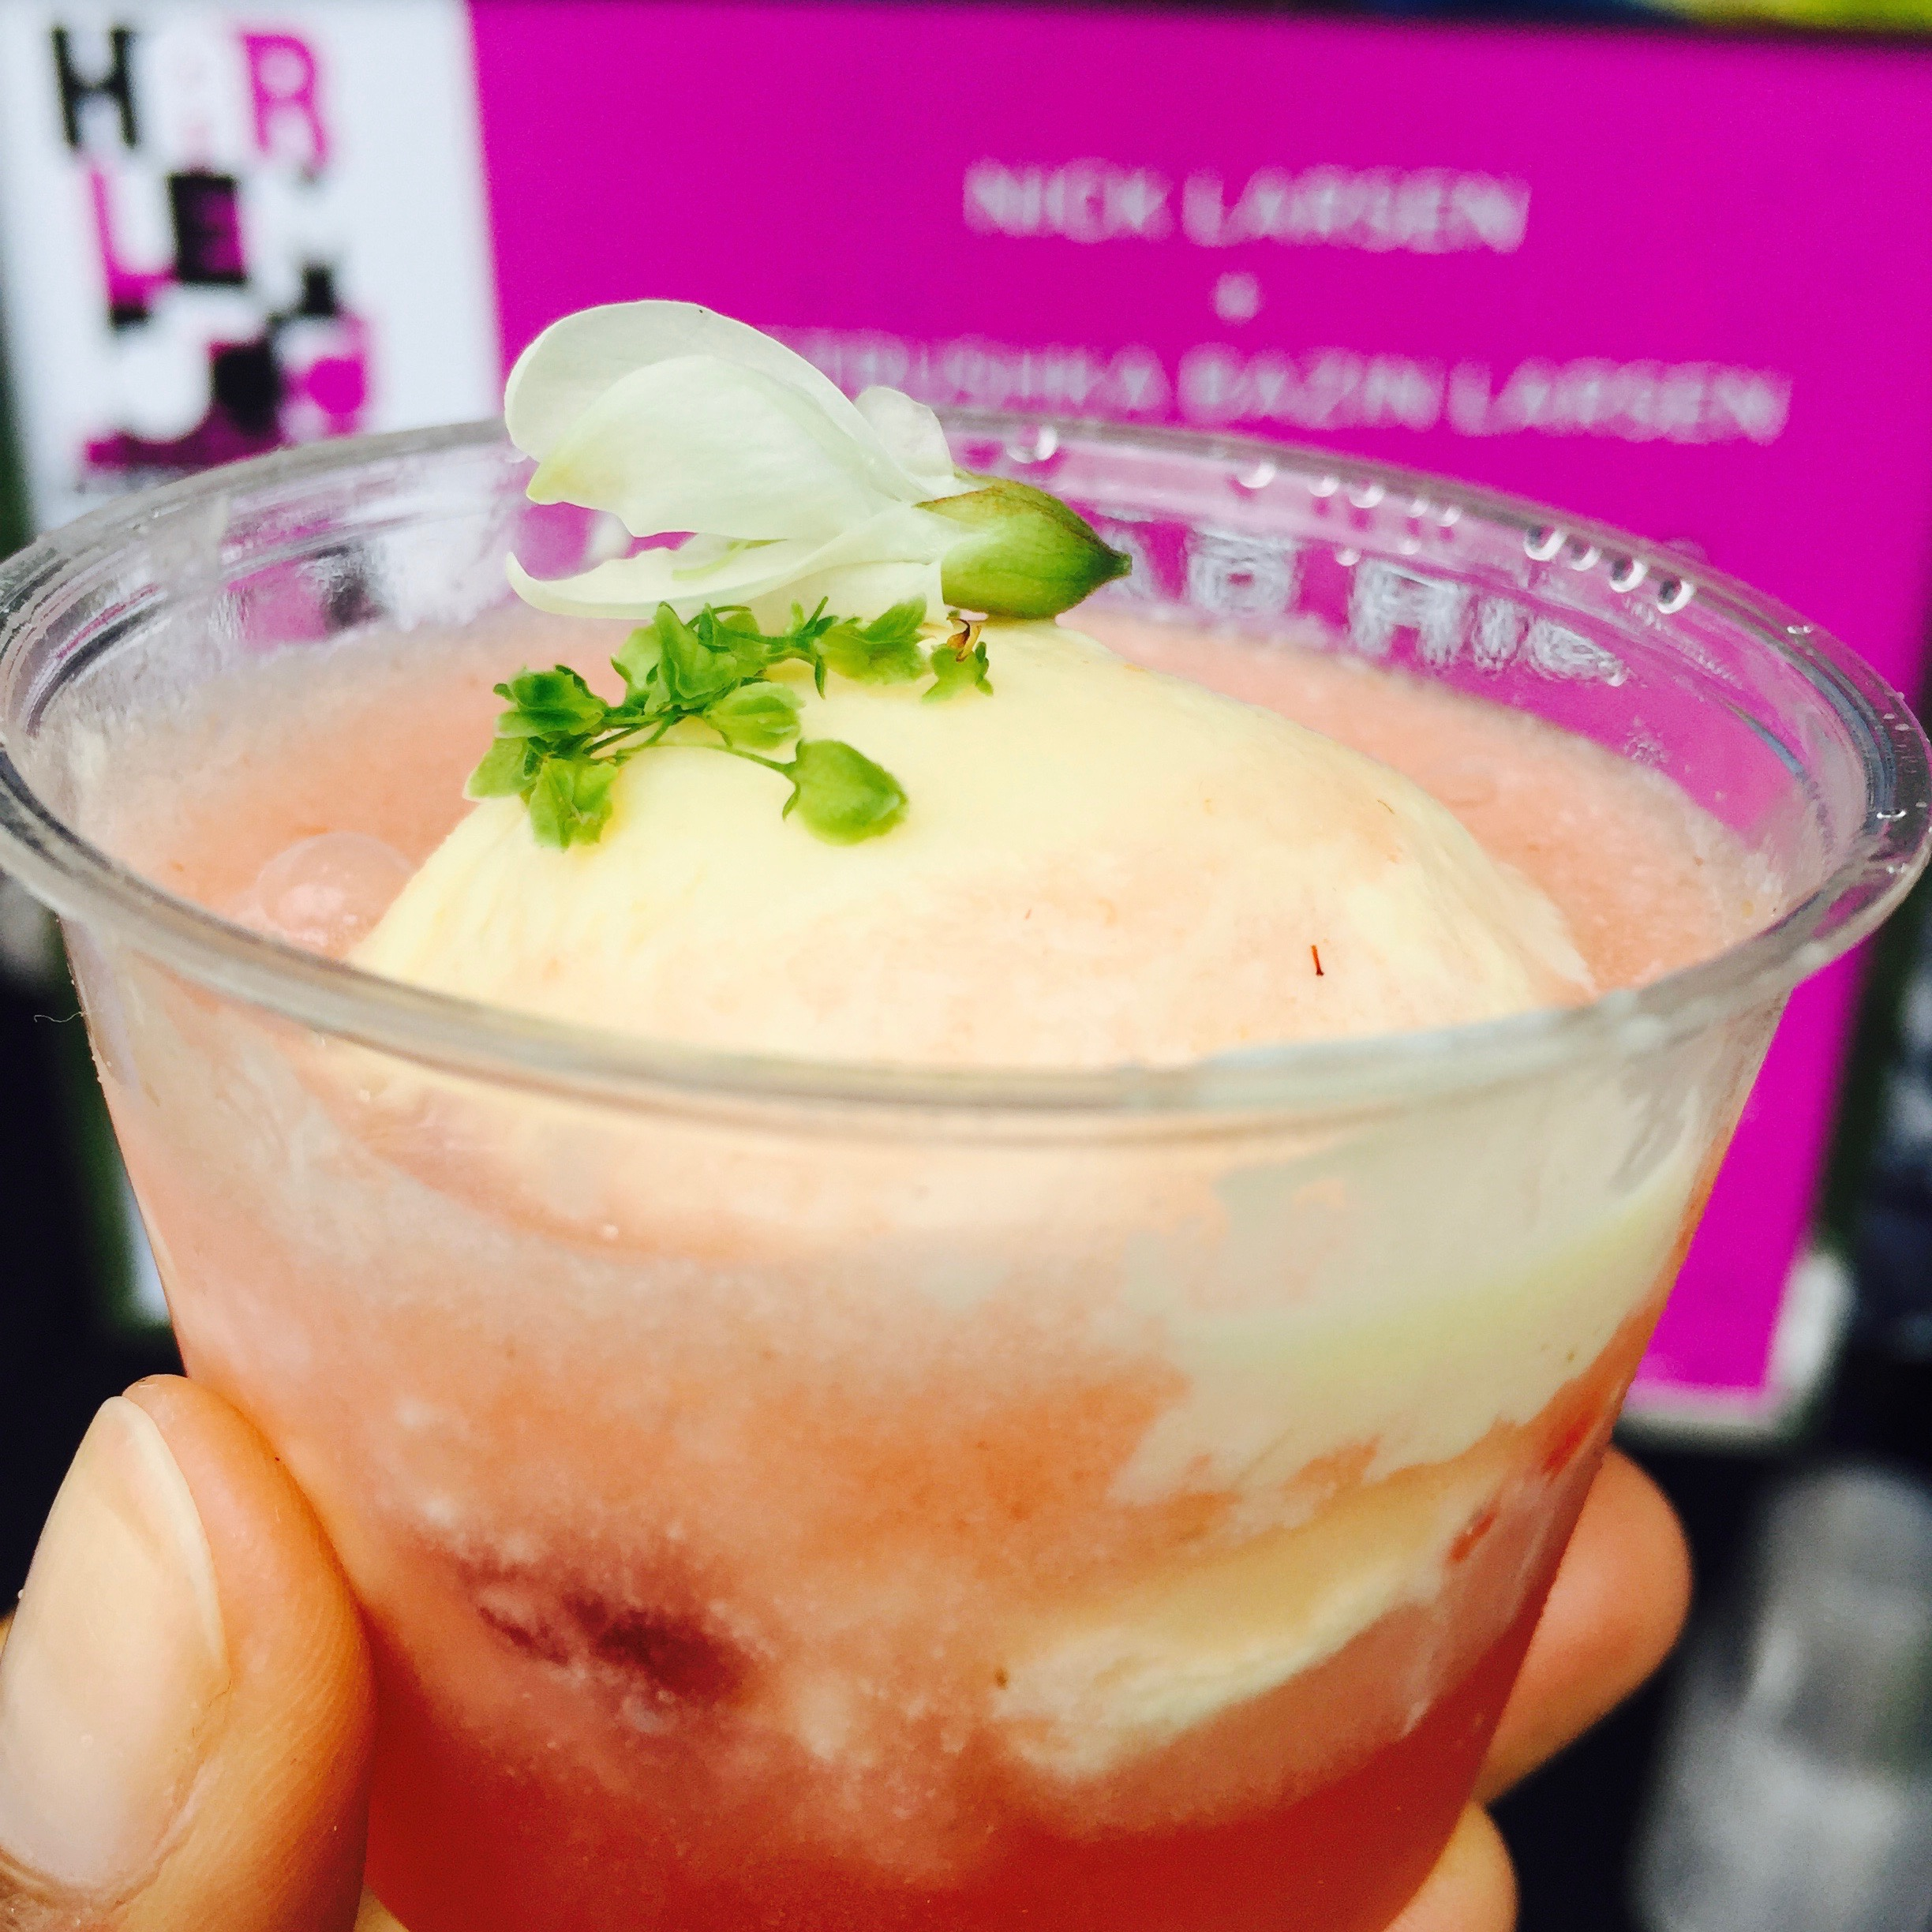 The Hottest NYC Food Festival Draws People From Around The World Uptown